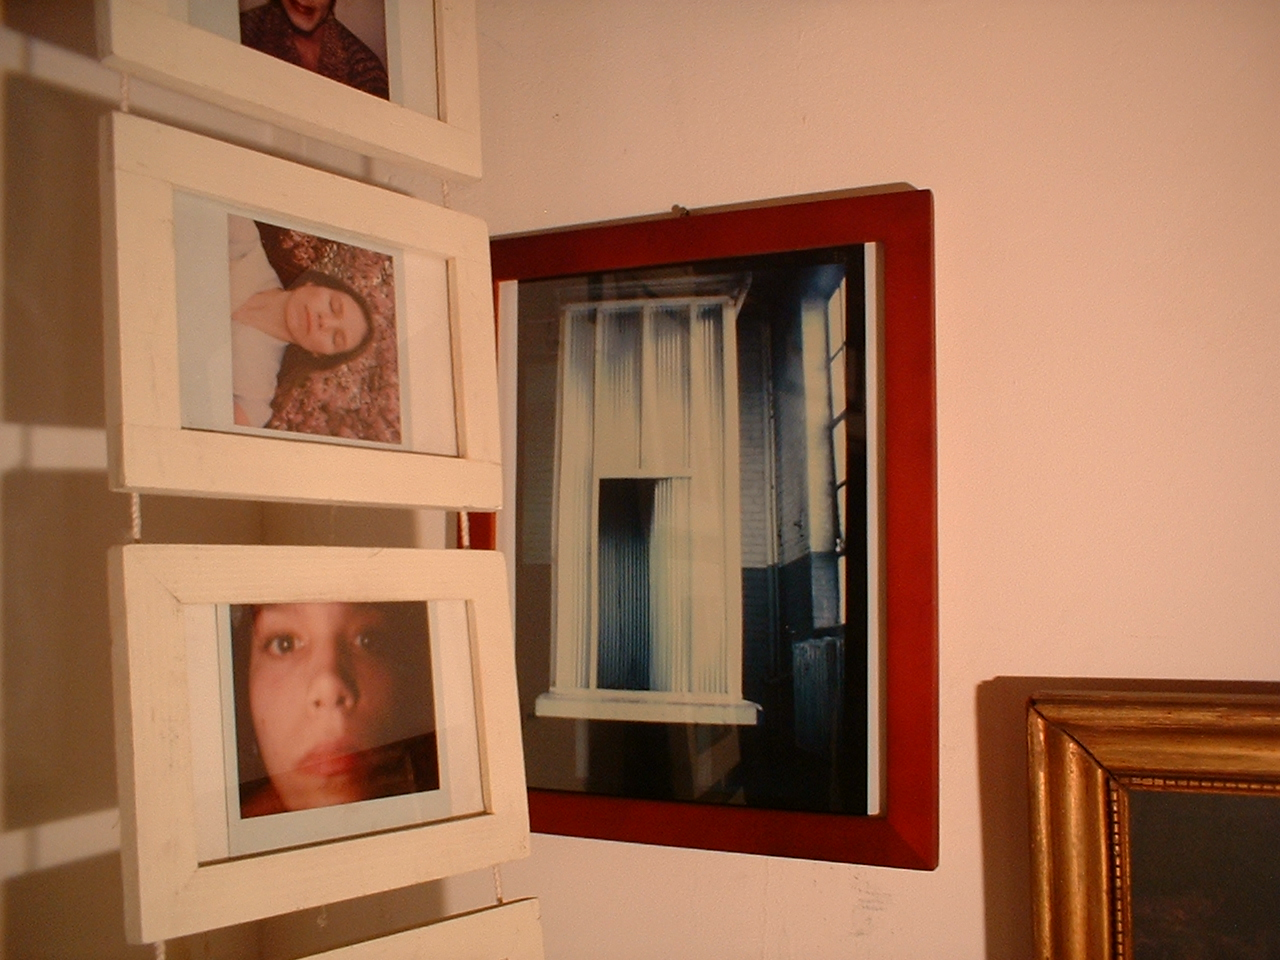 (including:) [detail] Thread of time, polaroid self portraits ages 21-33, some burned others given away. 2001; photos, string, frames. Artifact from Fut #3. 1989; color macine print, wooden frame.